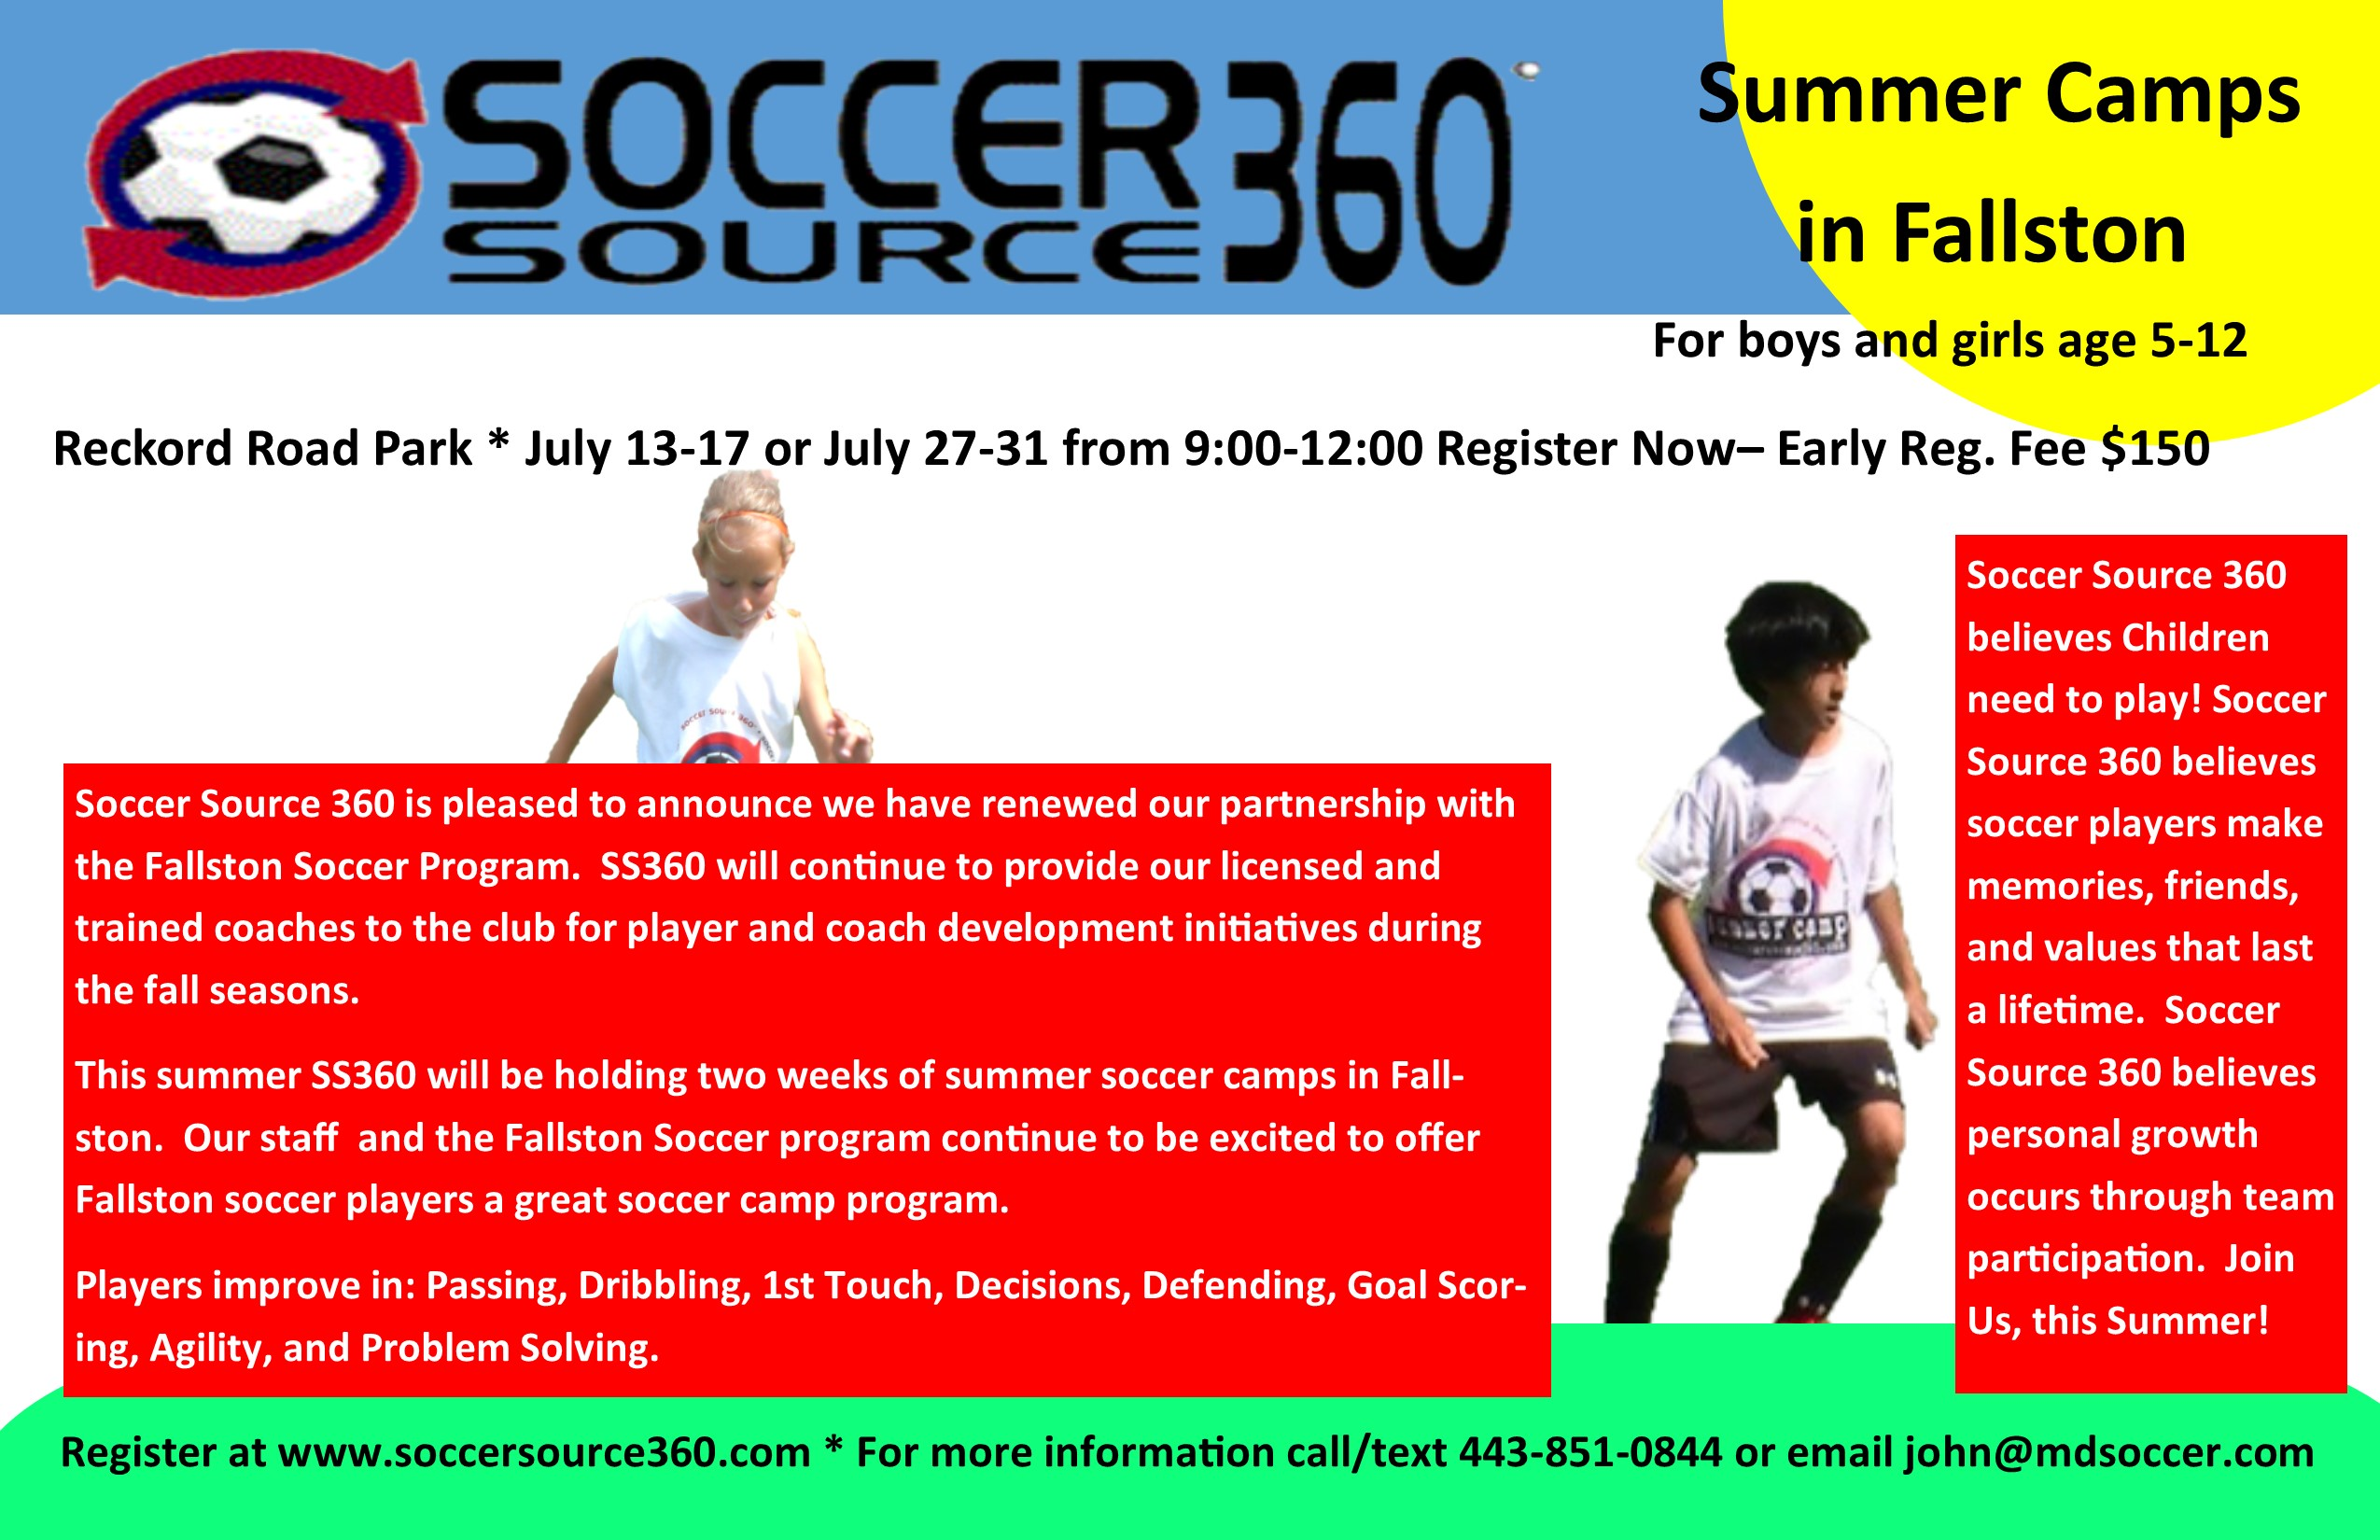 Soccer Source 360 Camp